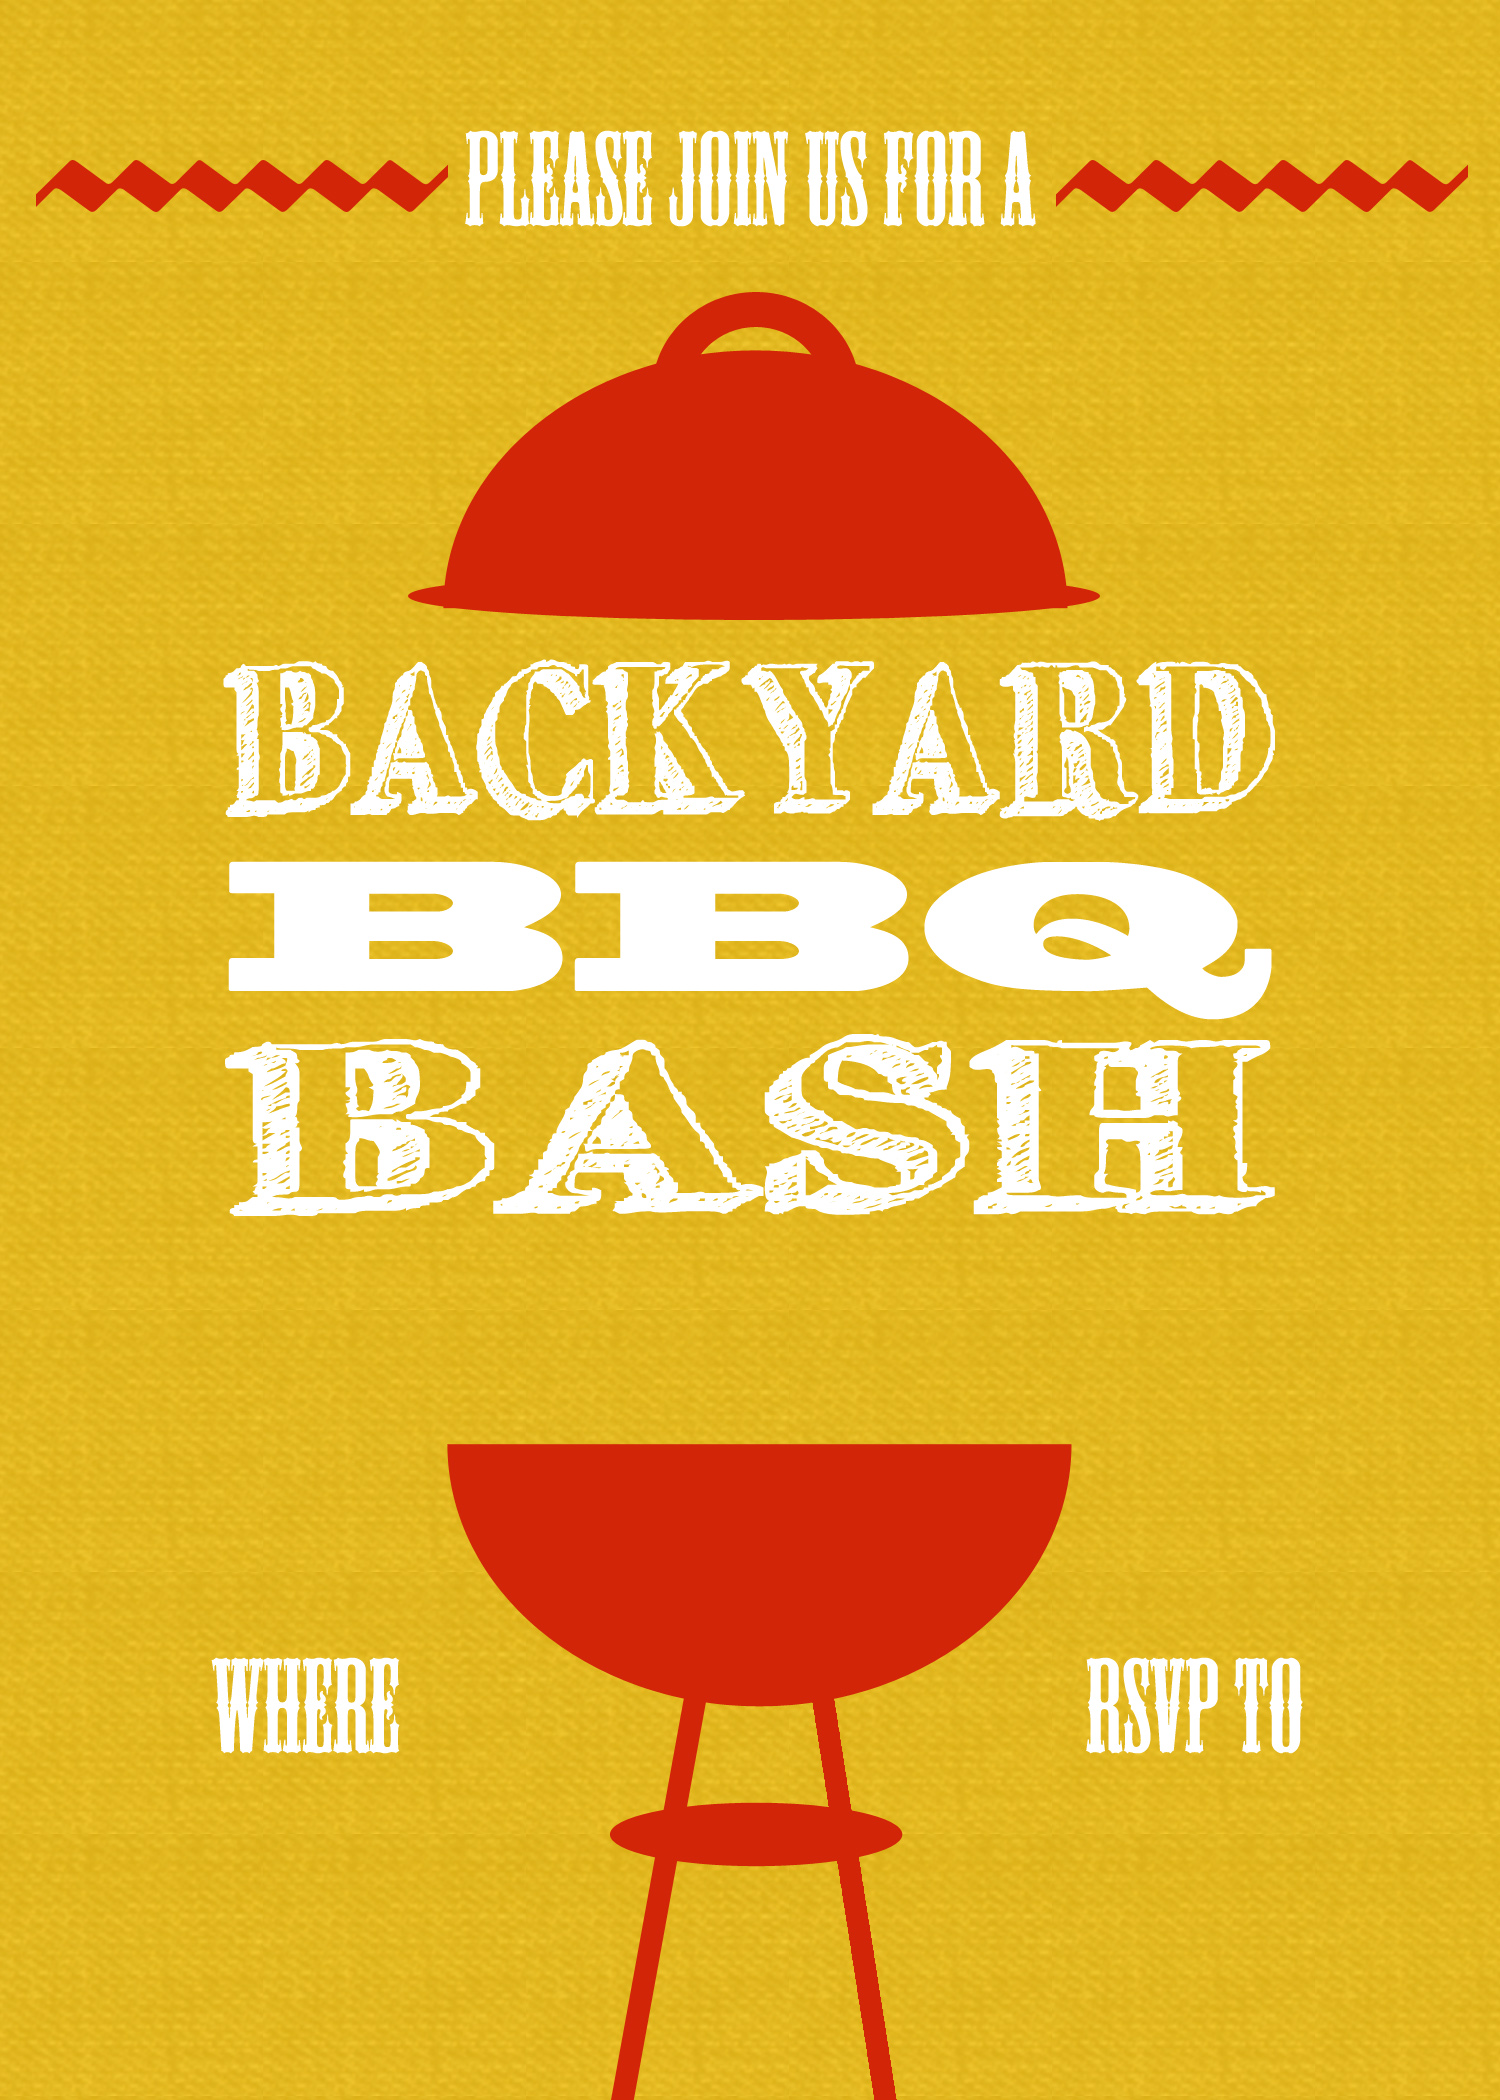 diy printable backyard bbq bash invite. Black Bedroom Furniture Sets. Home Design Ideas